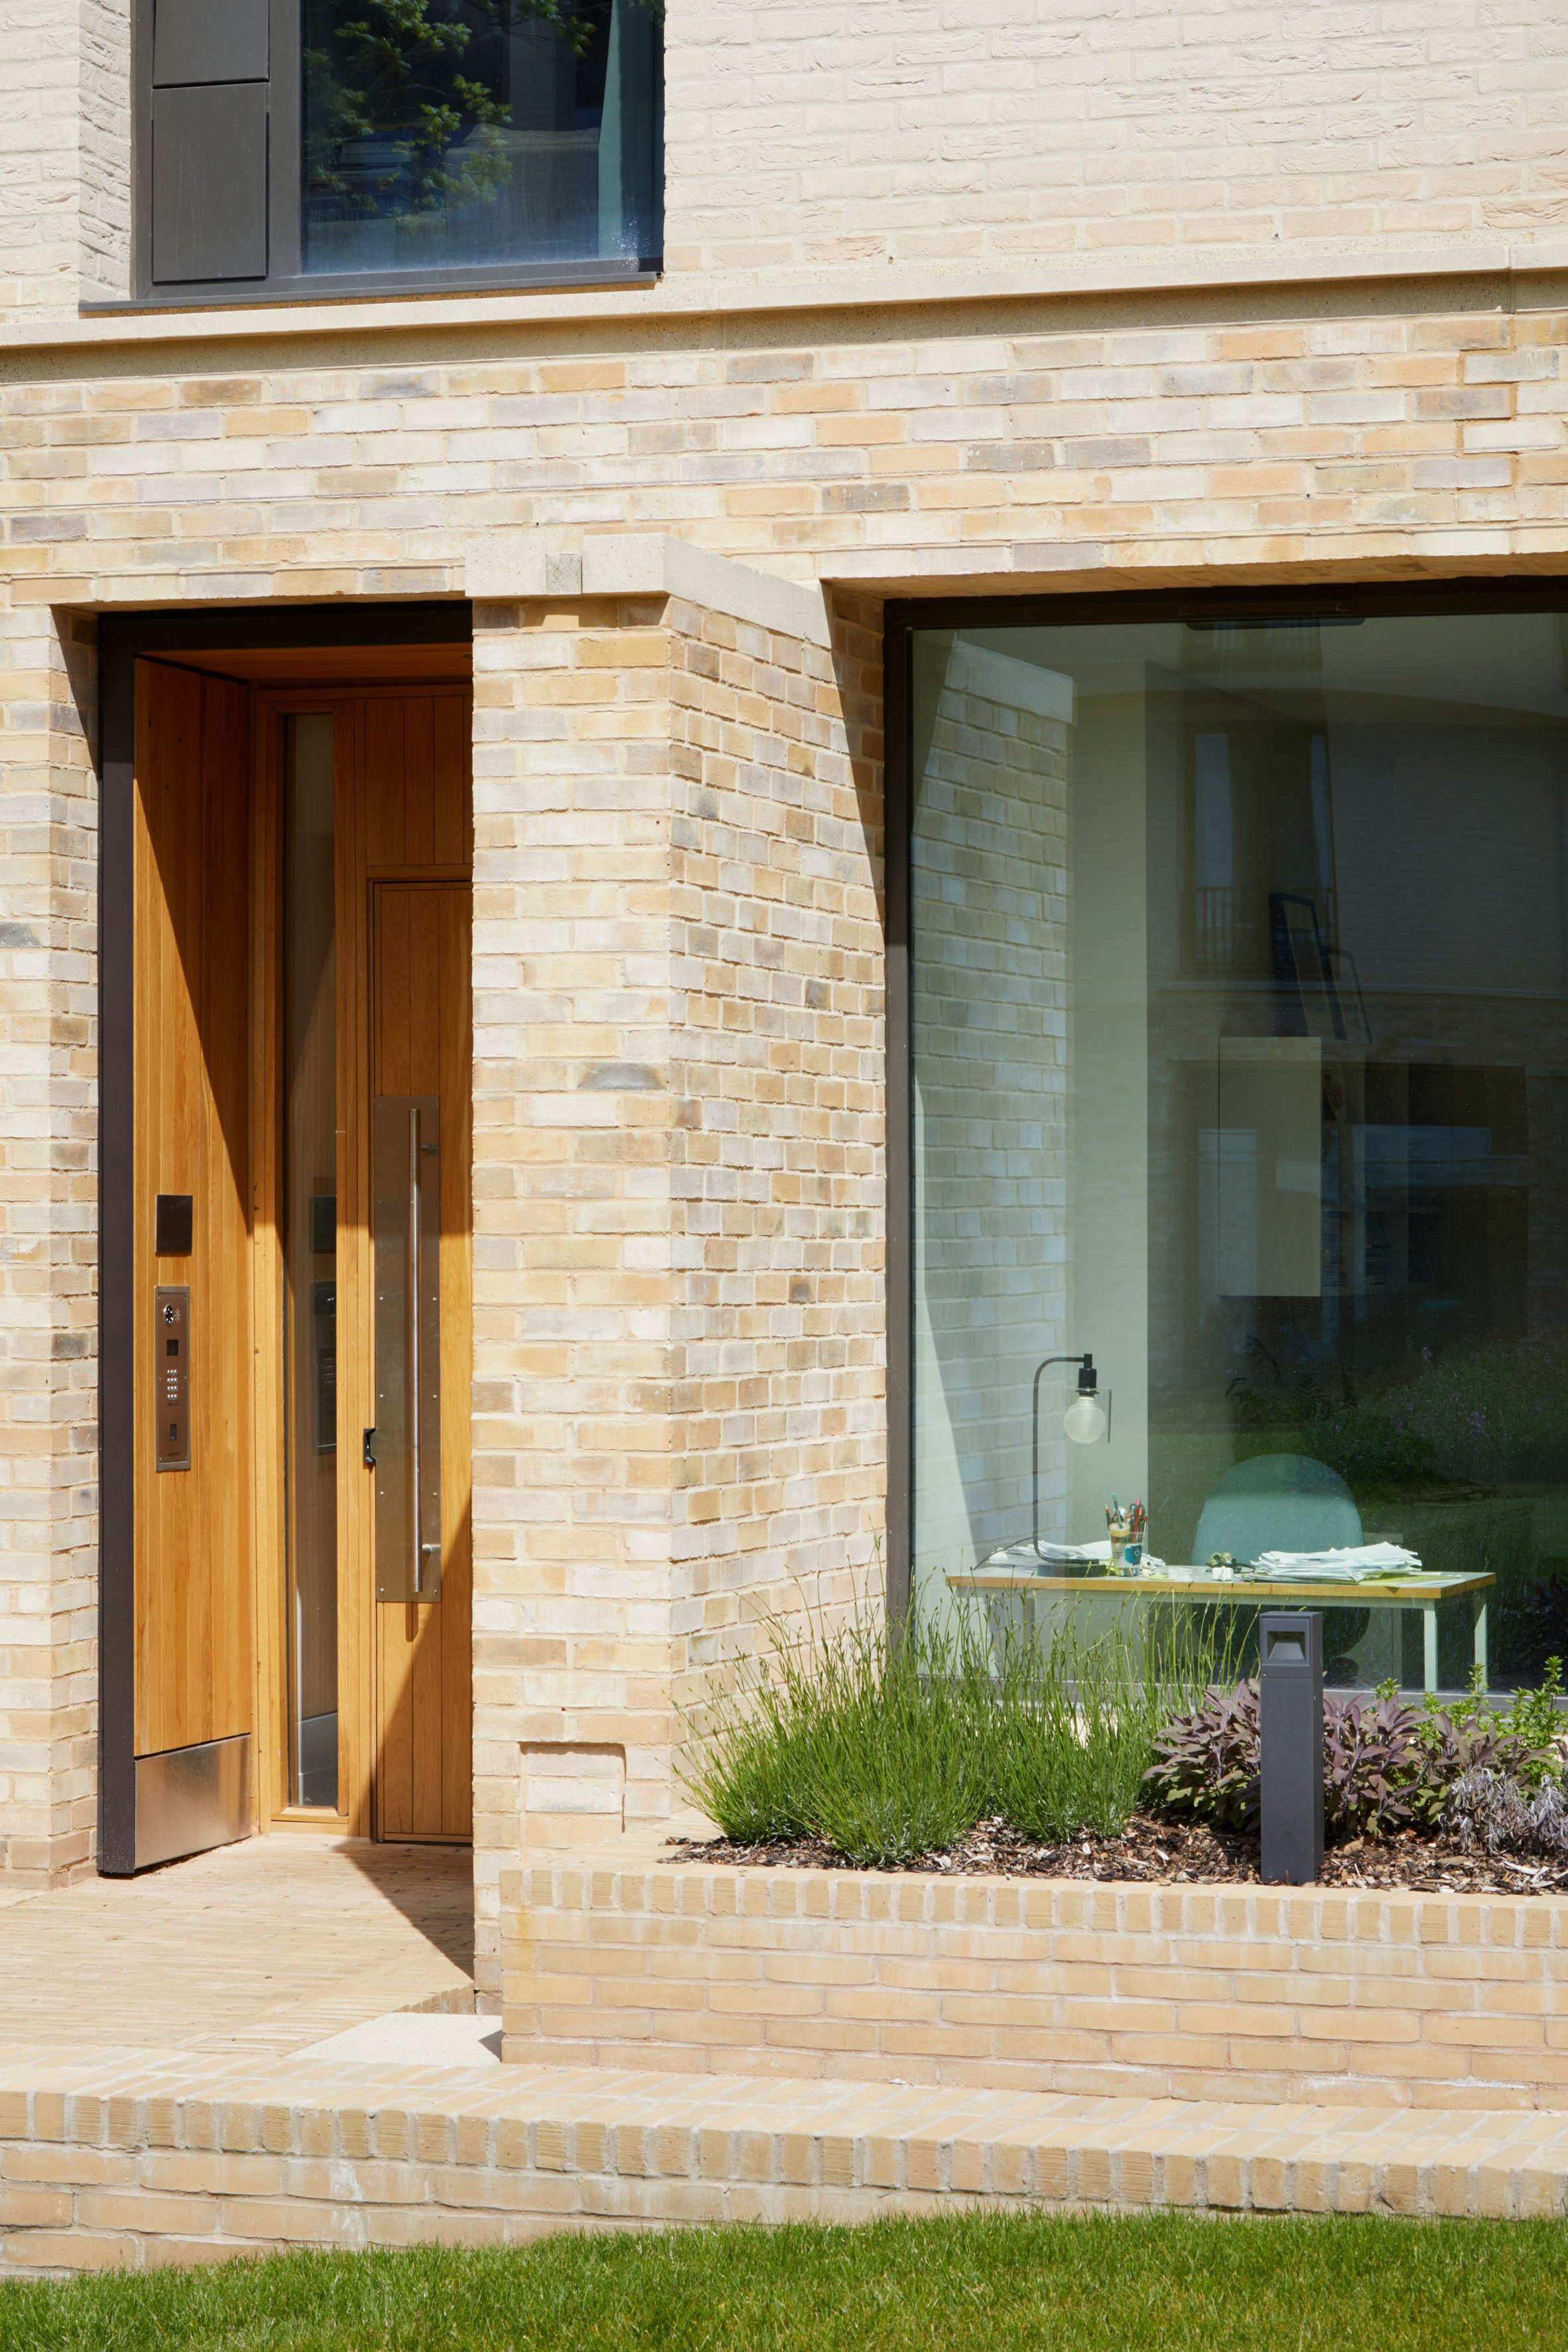 Pale brick was used across the exterior of Key Workers Housing